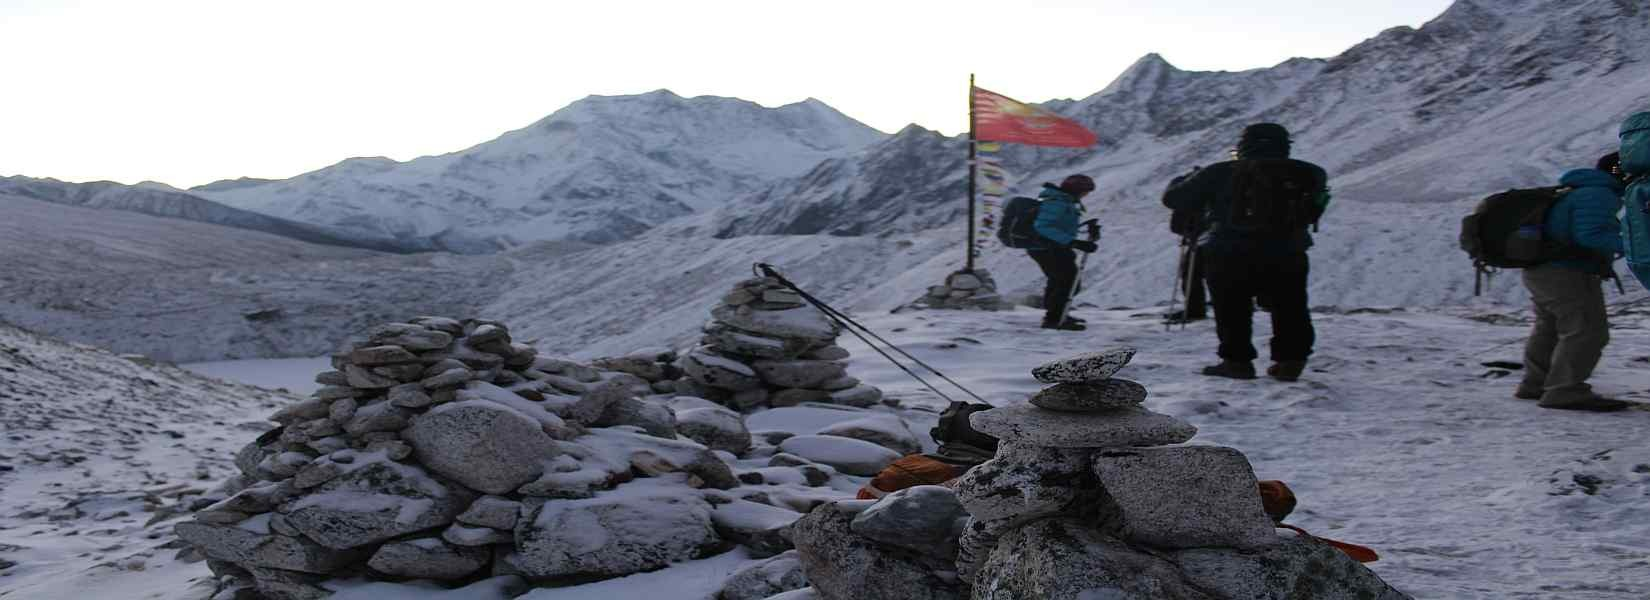 Manaslu Trek Is Not That Much Difficult